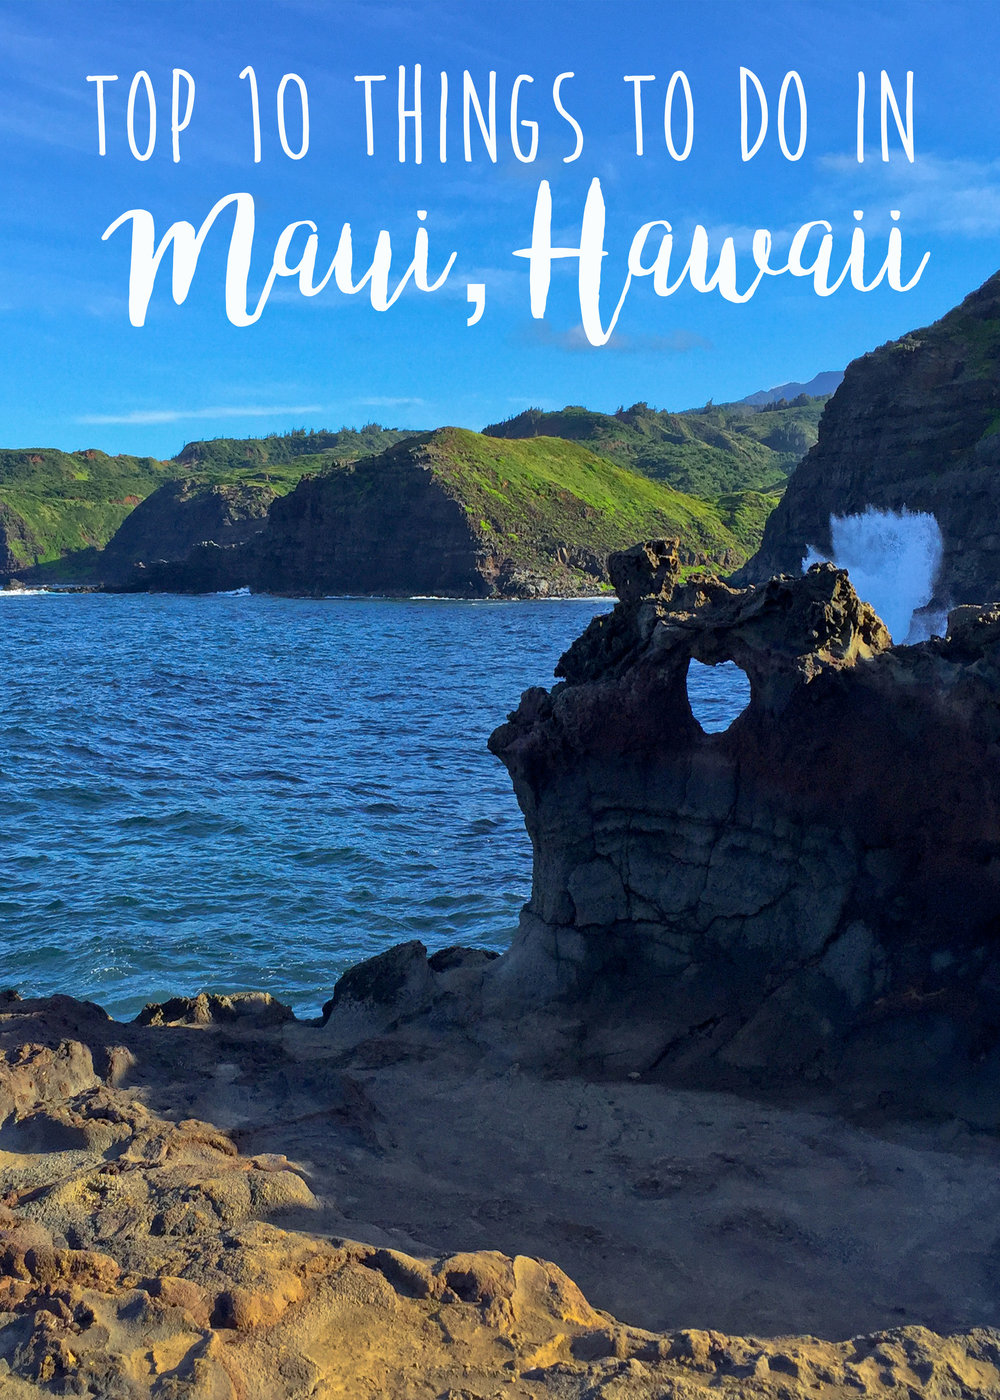 Top 10 Things to do in Maui - Wandering Jokas Travel Blog